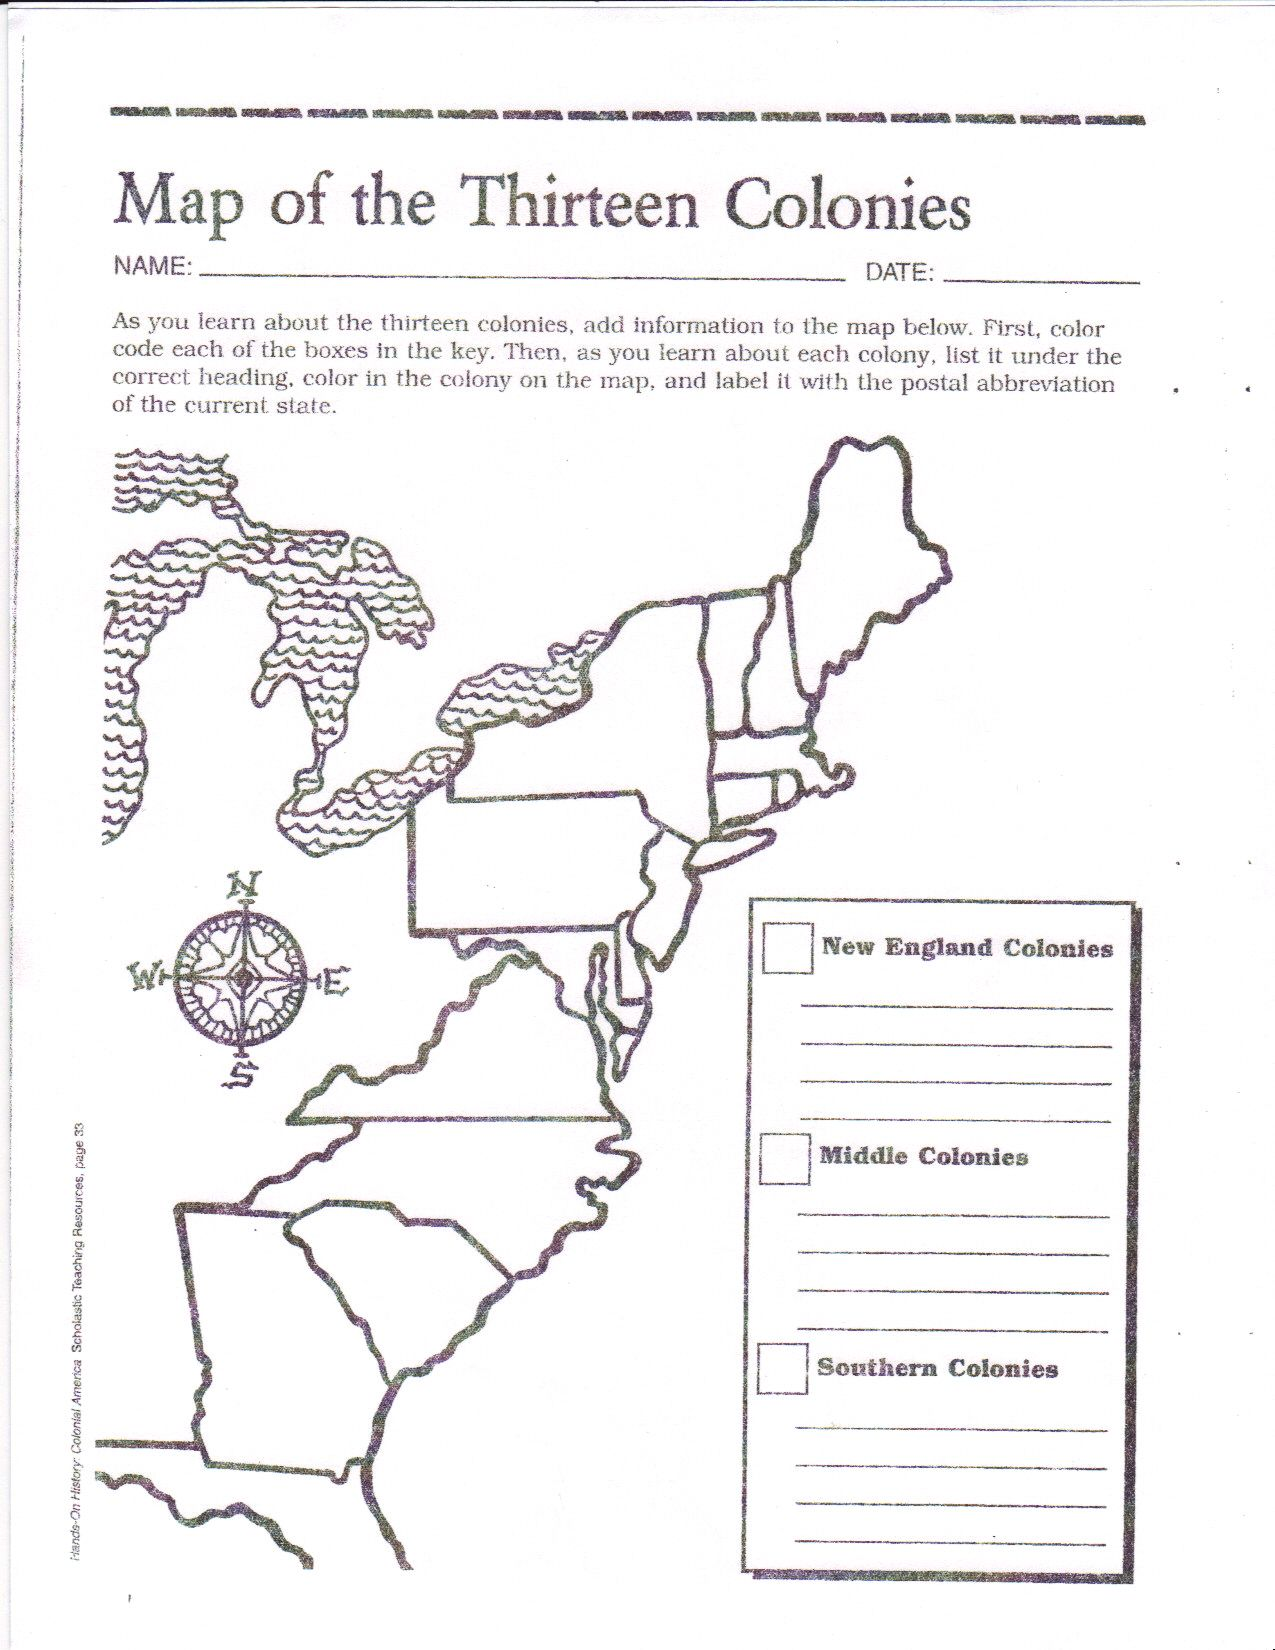 worksheet. 13 Colonies Map Worksheet. Carlos Lomas